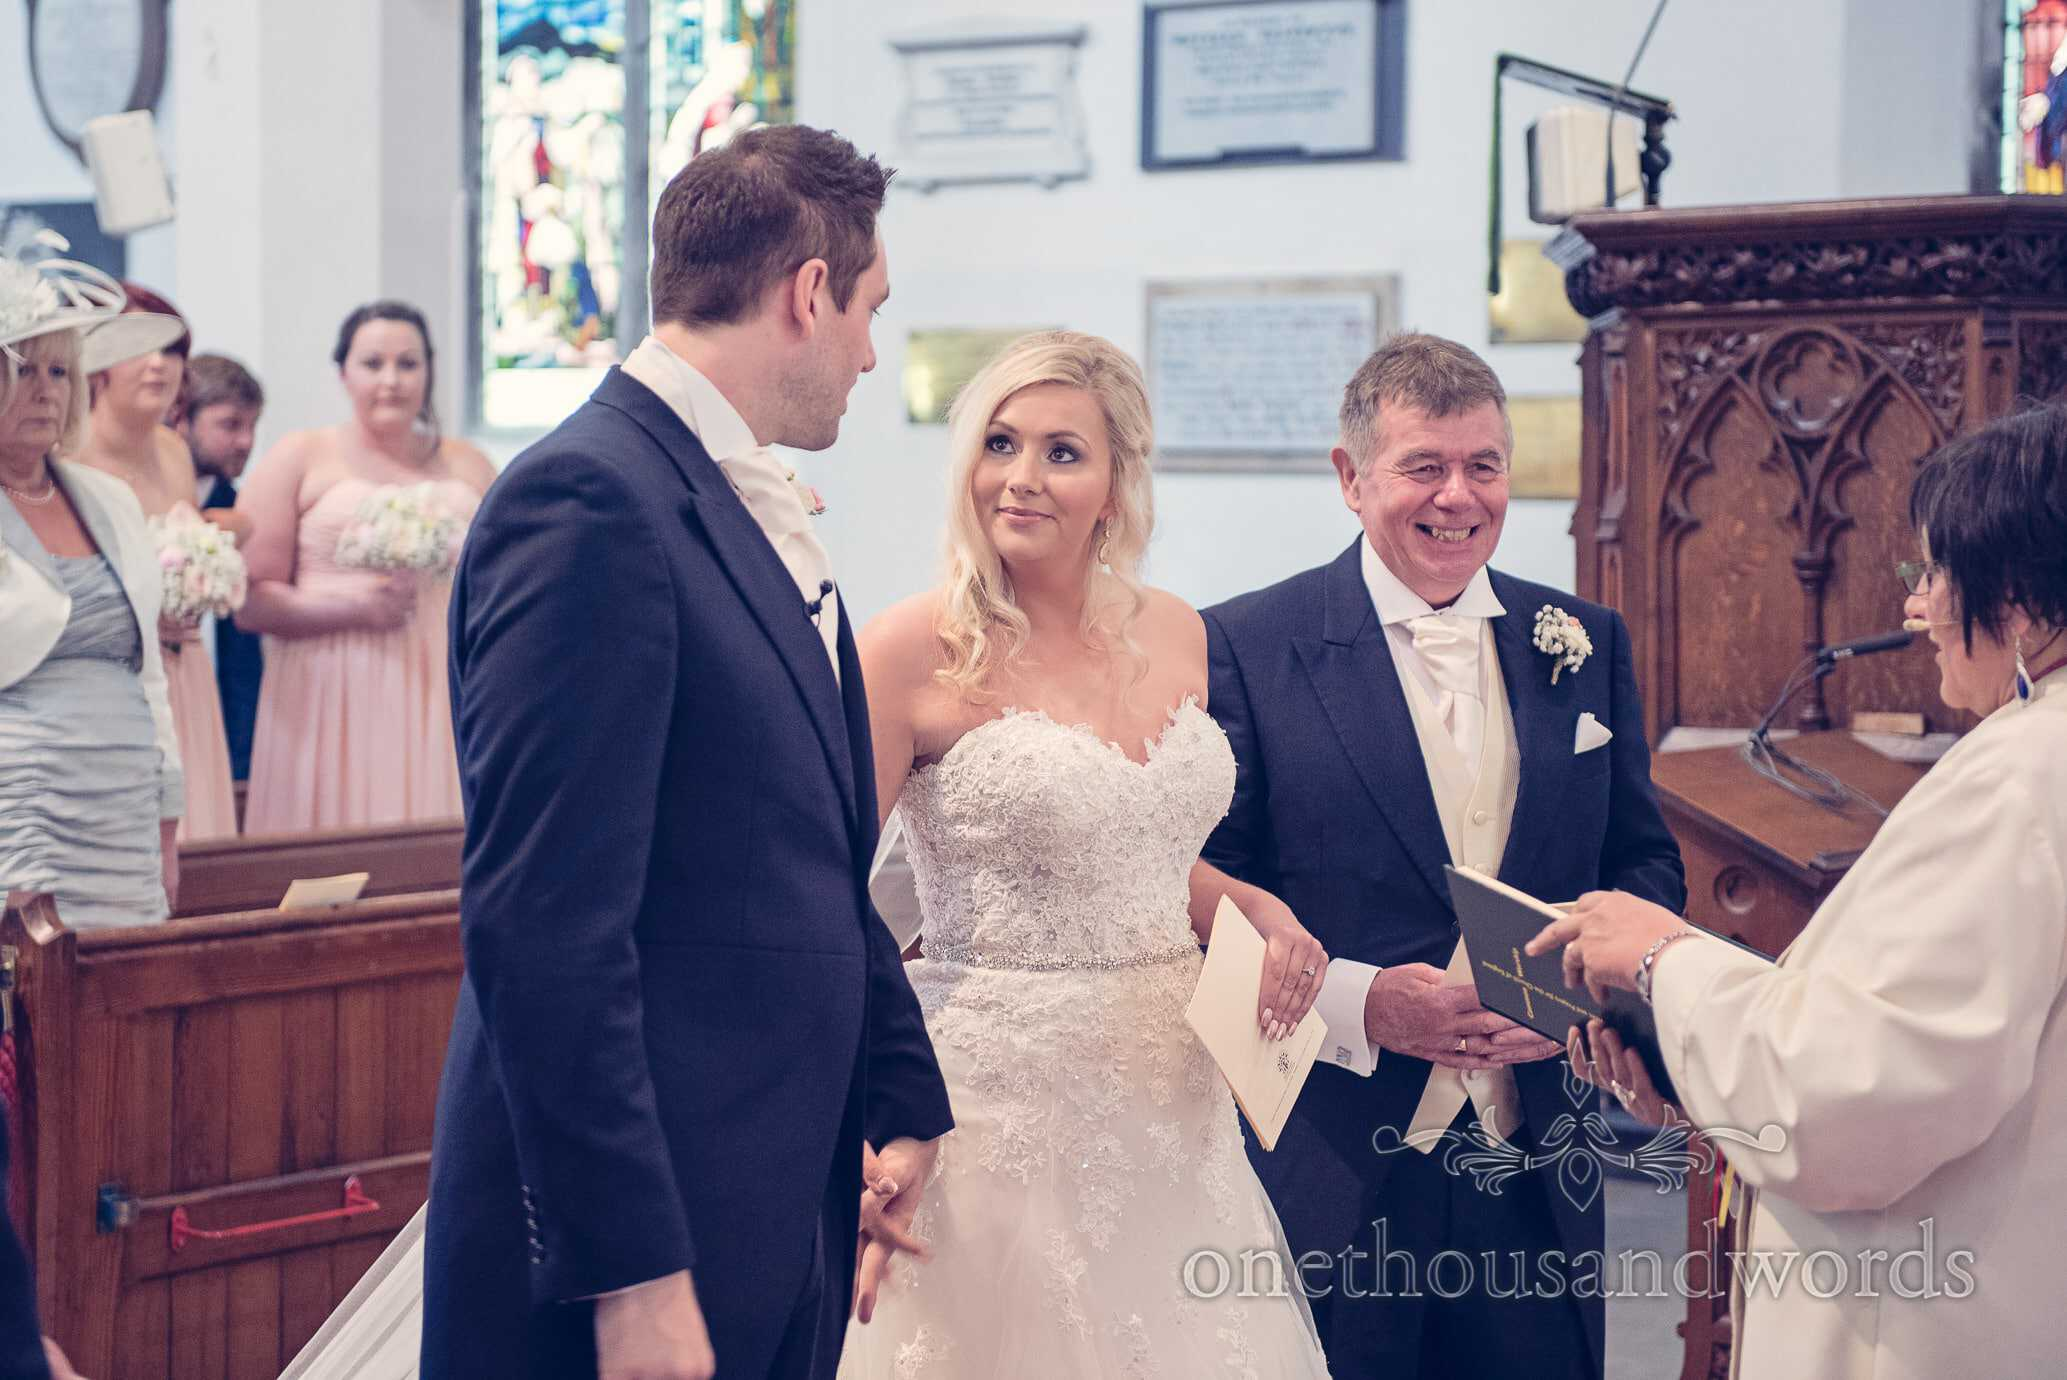 Father of bride, bride and groom at church wedding ceremony in Dorset